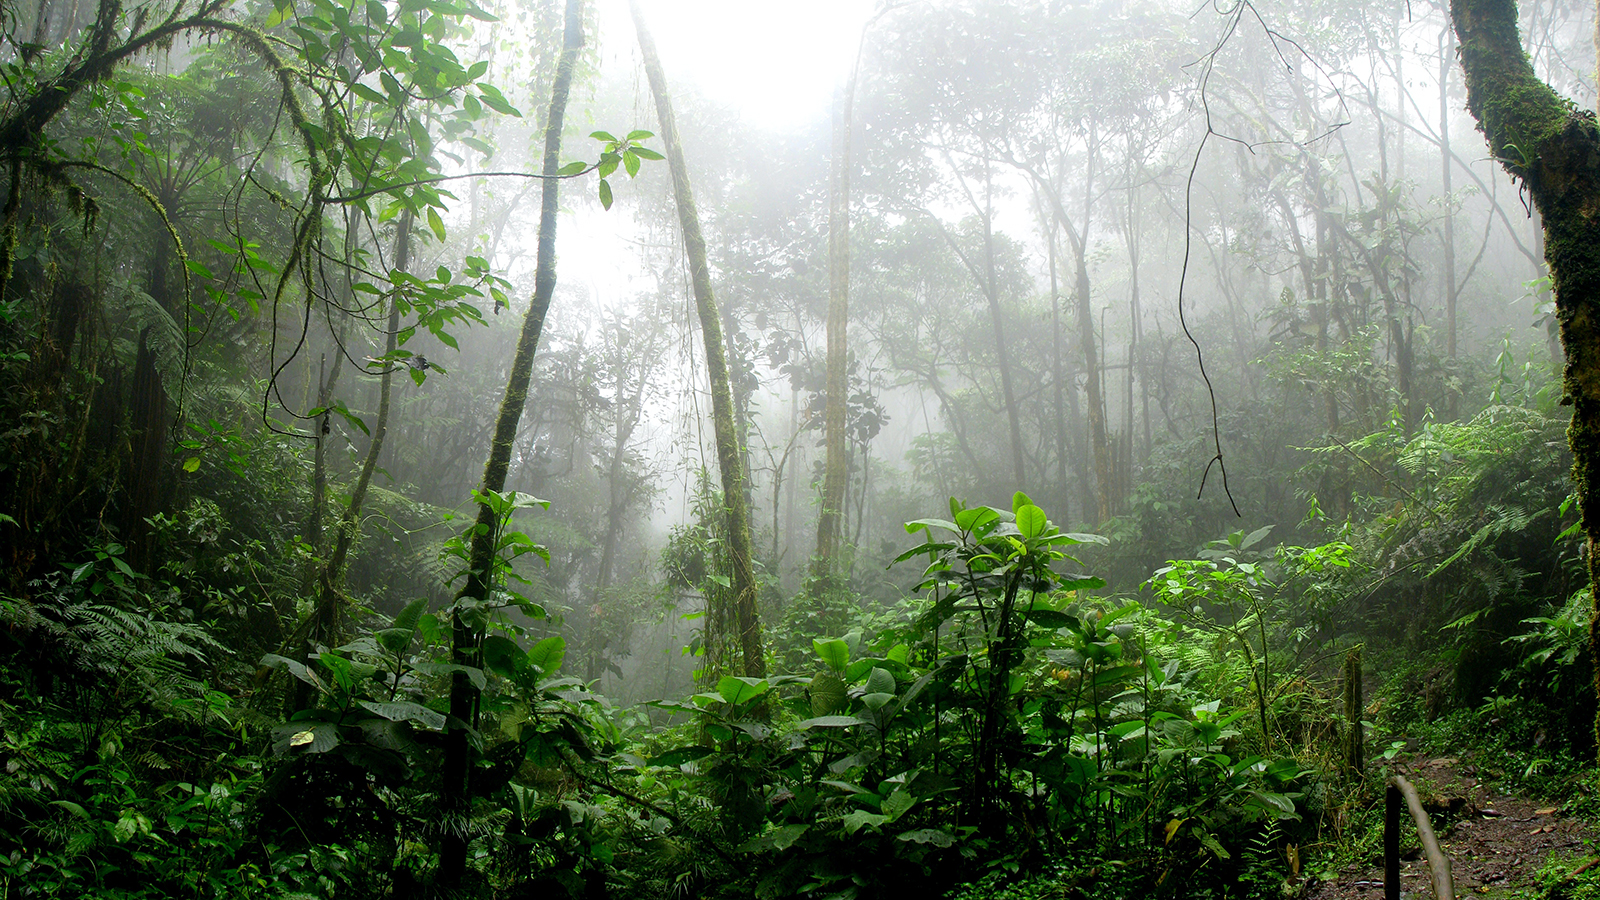 Misty Amazonian rainforest.